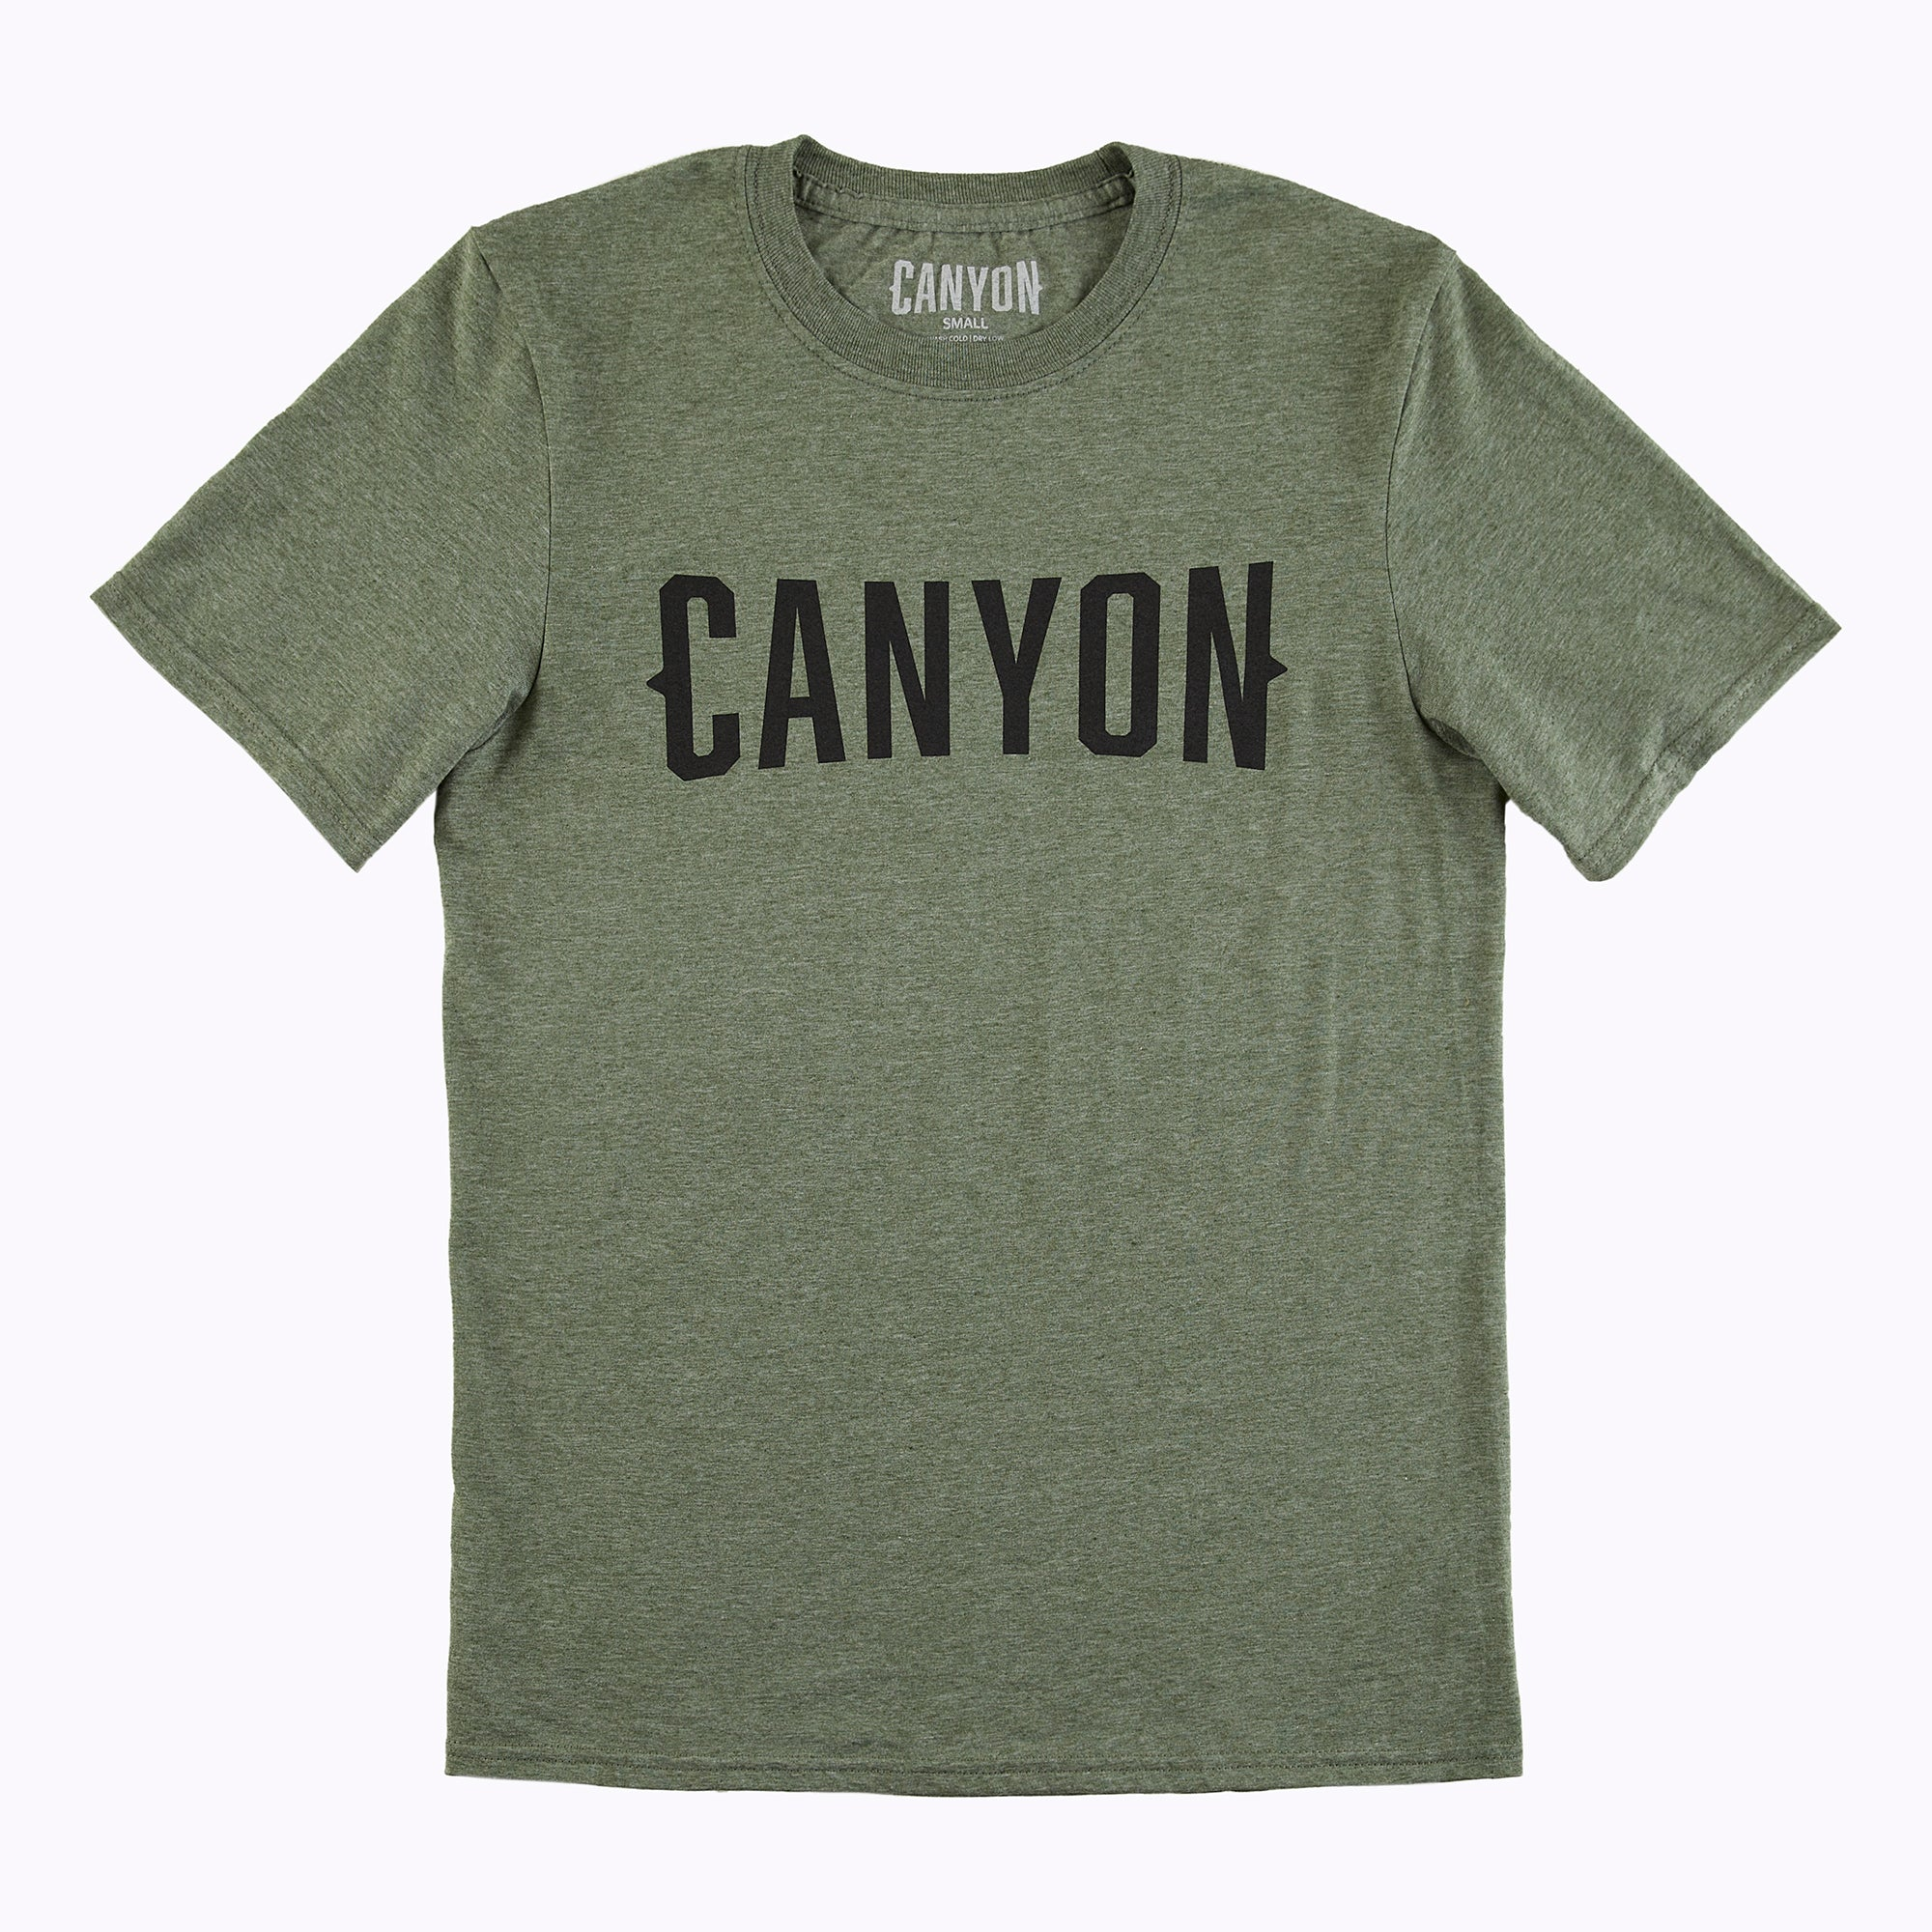 Logo Tee Shirt - Small by Canyon Socks